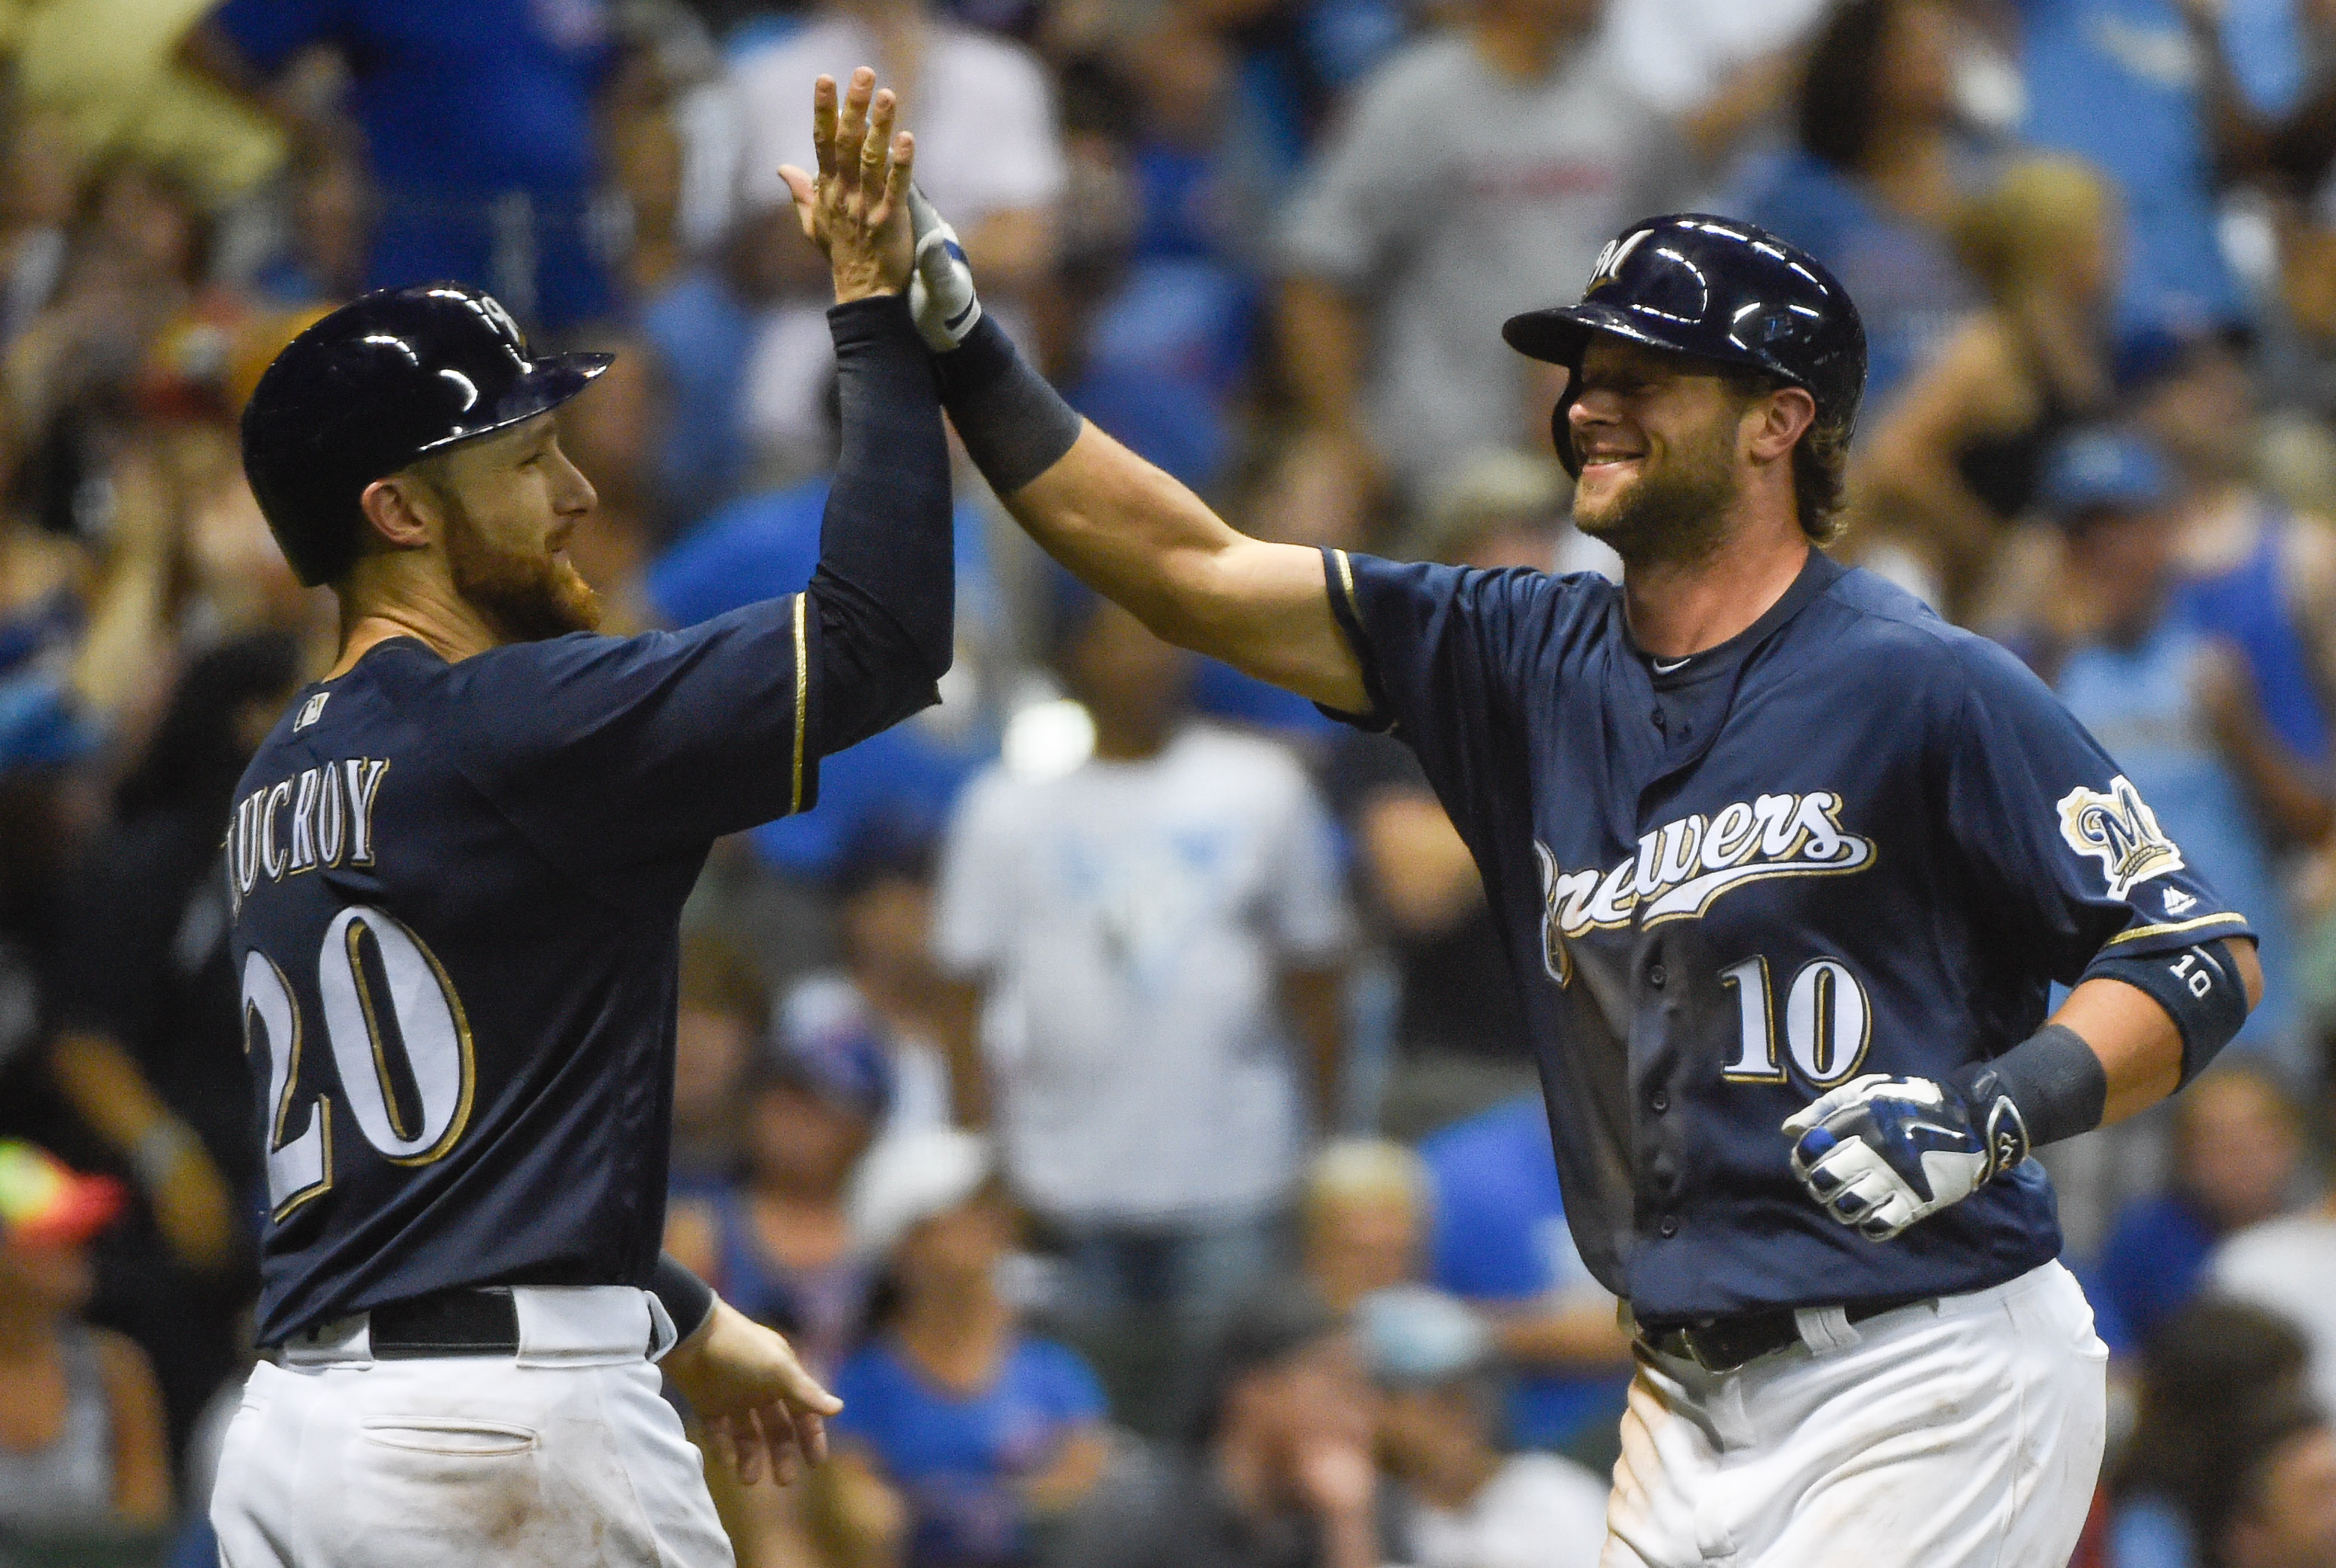 Milwaukee Brewers' Kirk Nieuwenhuis, right, is greeted by Jonathan Lucroy after hitting a three-run home run off Chicago Cubs pitcher Mike Montgomery during the eighth inning of a baseball game Saturday, July 23, 2016, in Milwaukee. Milwaukee won 6-1. (AP